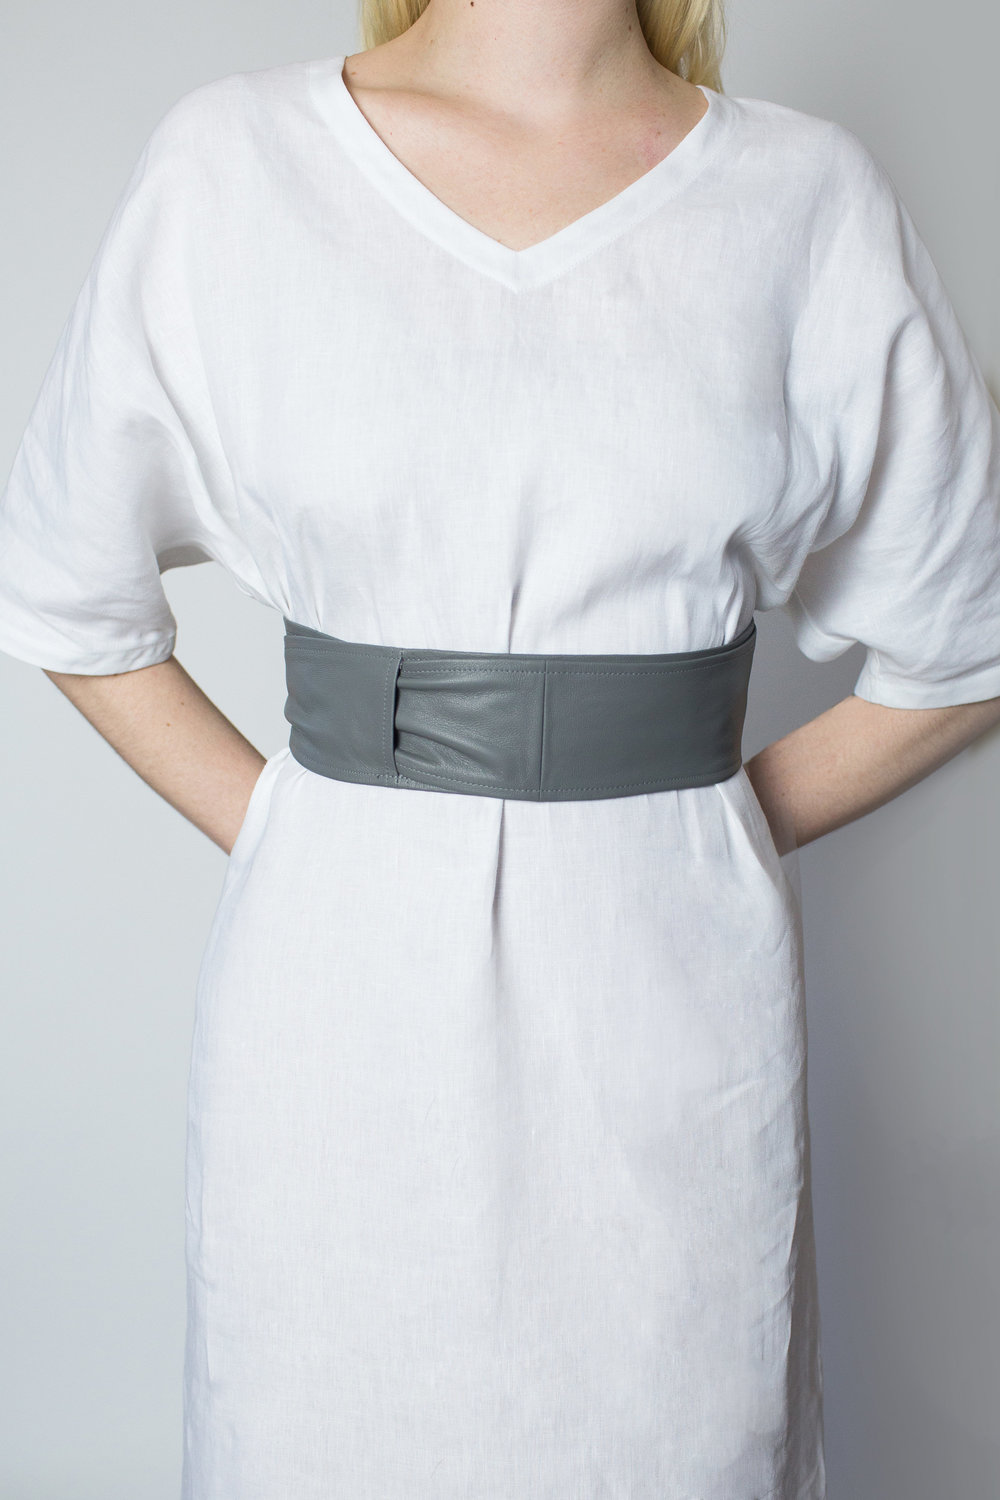 April Pride grey obi belt